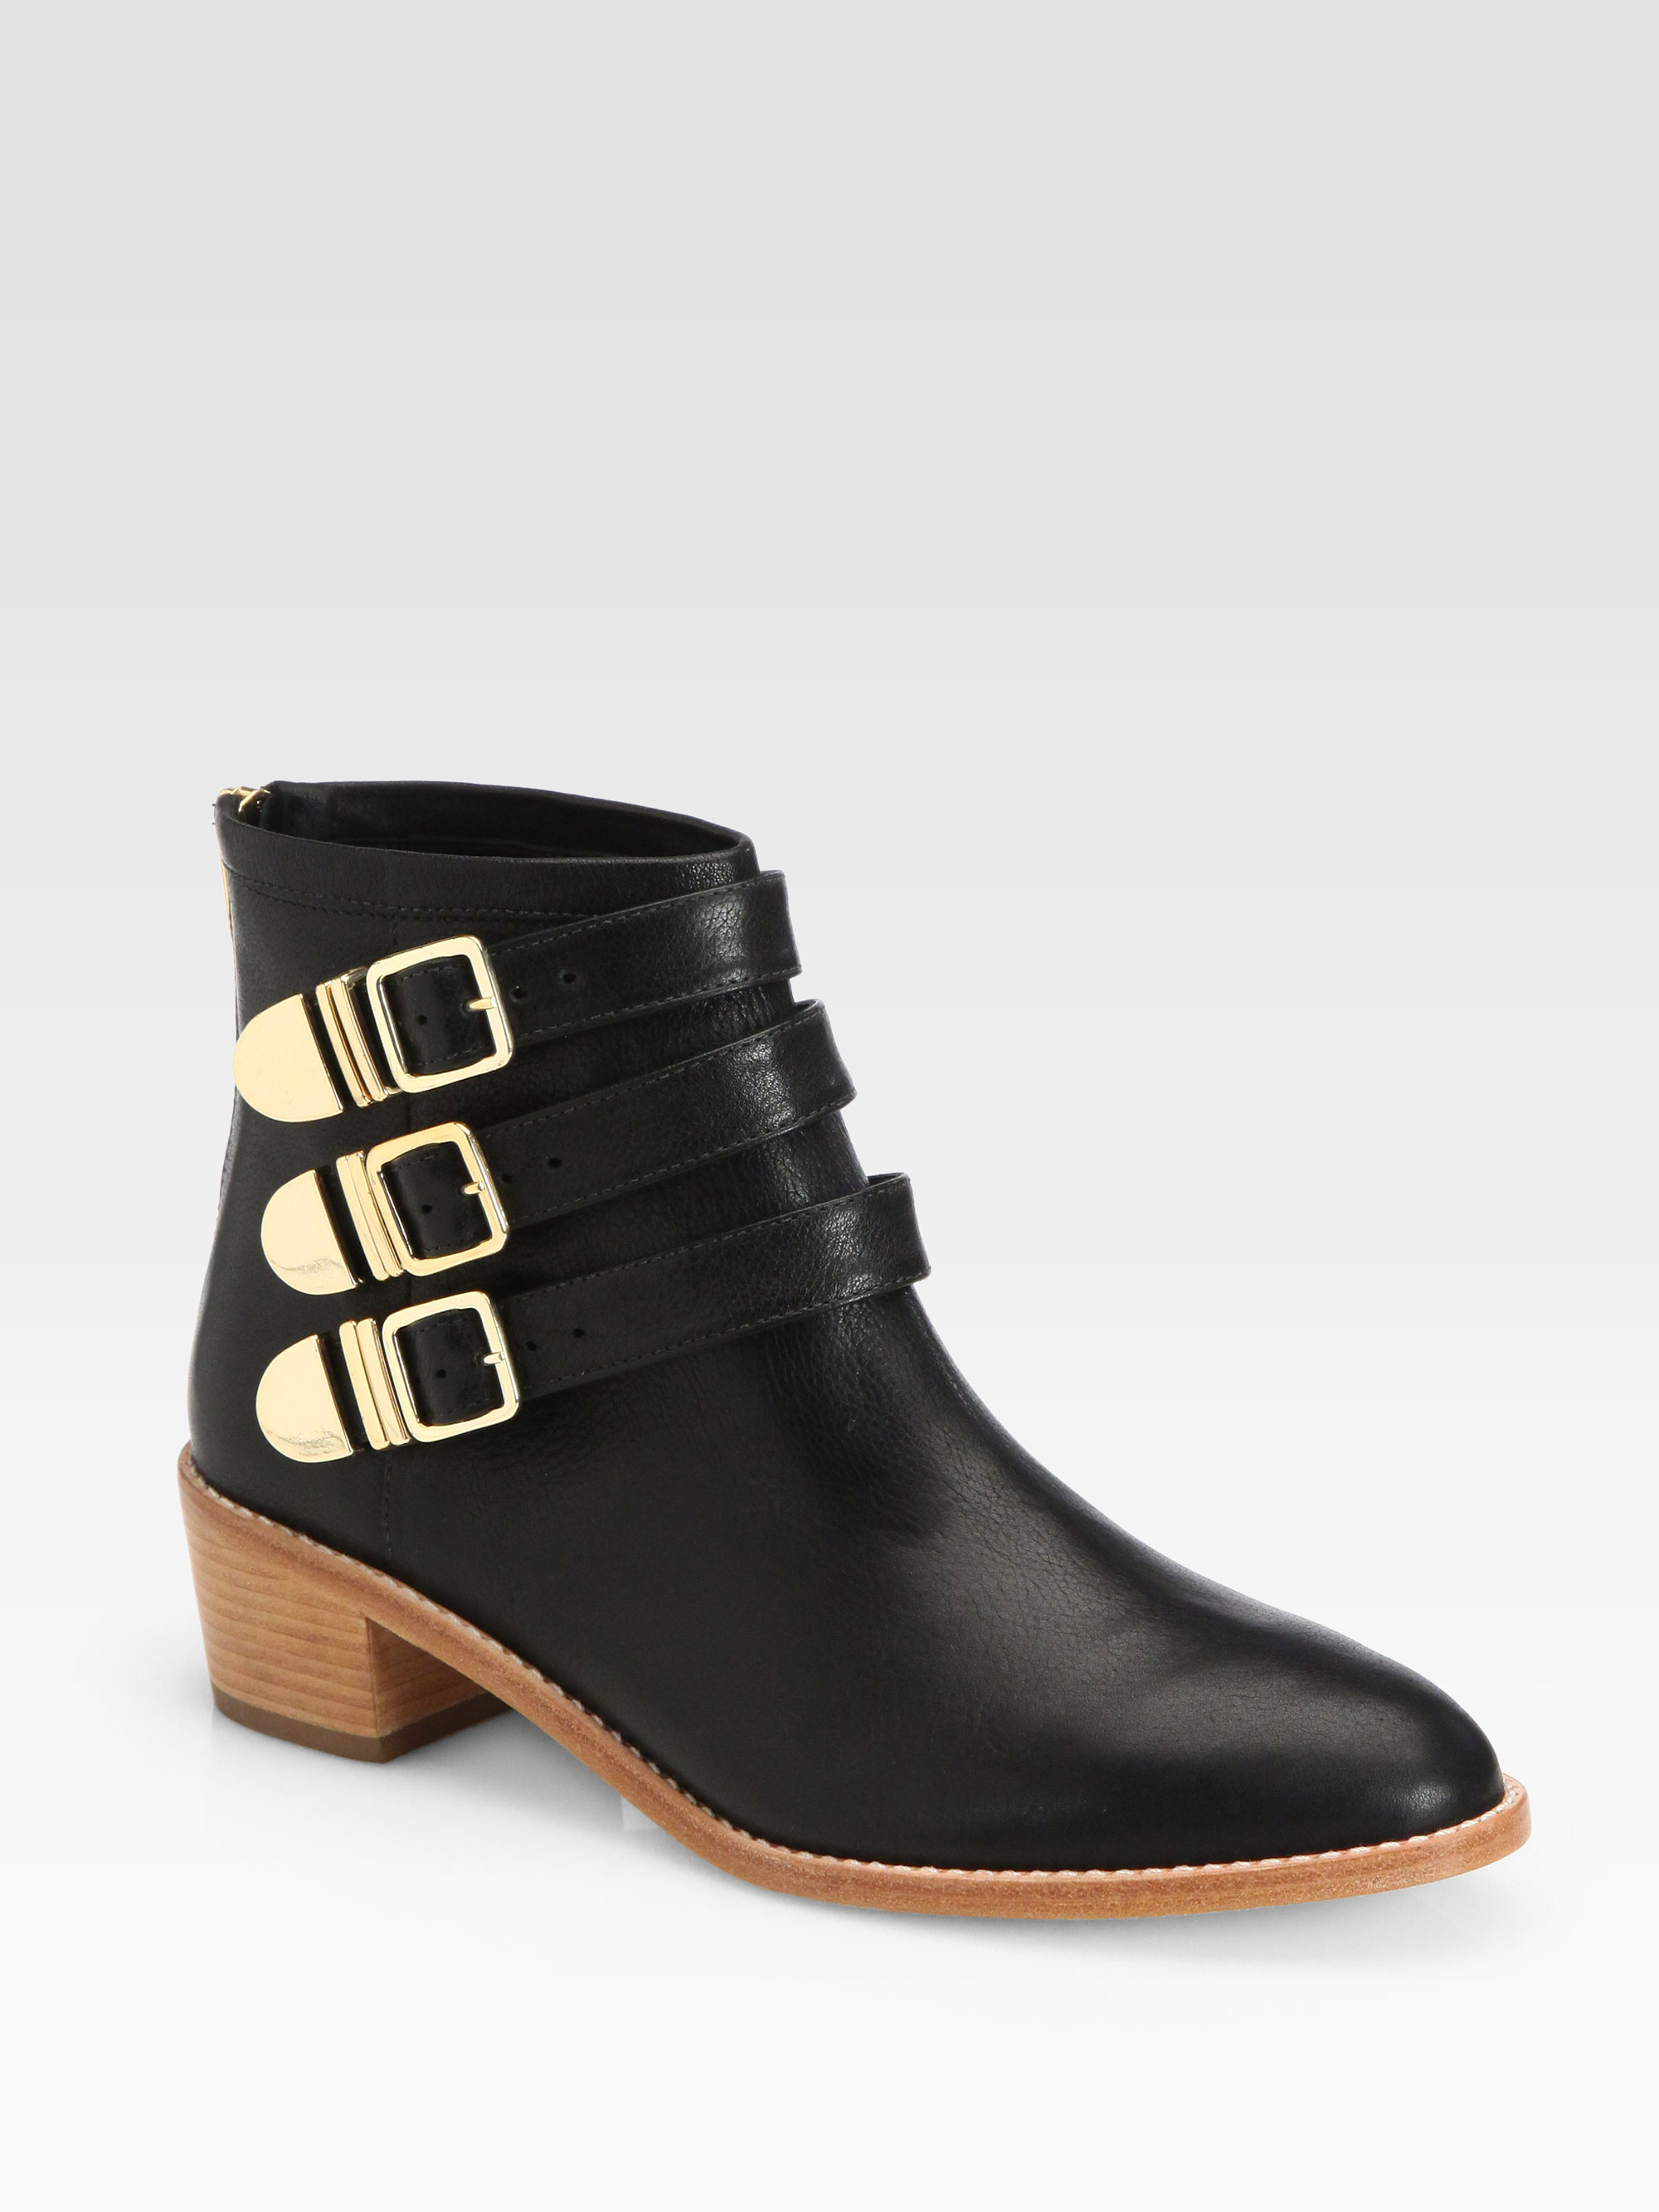 Loeffler randall Fenton Leather Buckle Ankle Boots in Black | Lyst